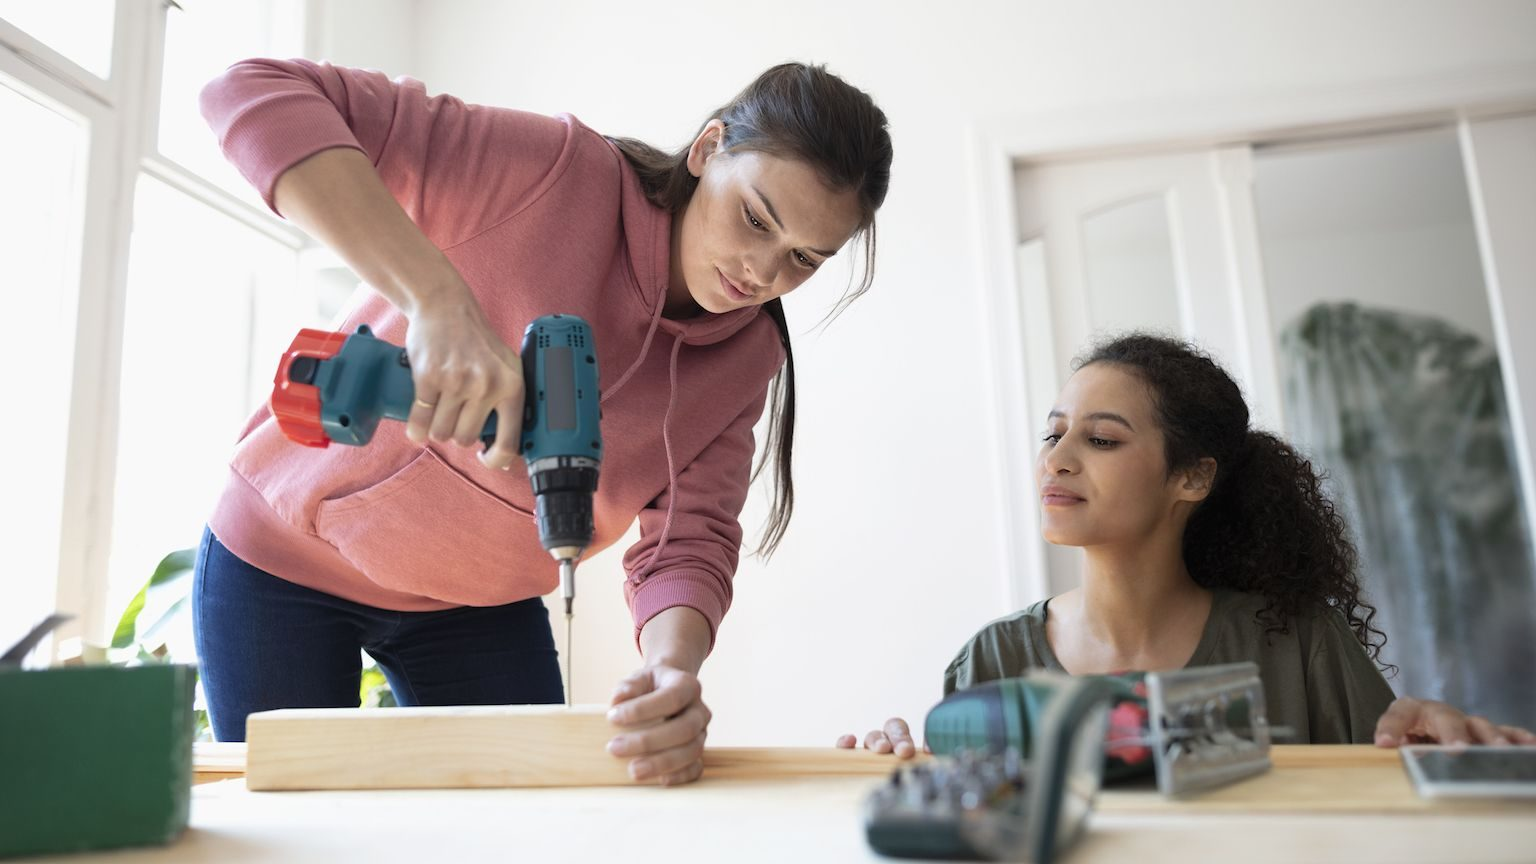 Two women using a cordless drill for a home construction project